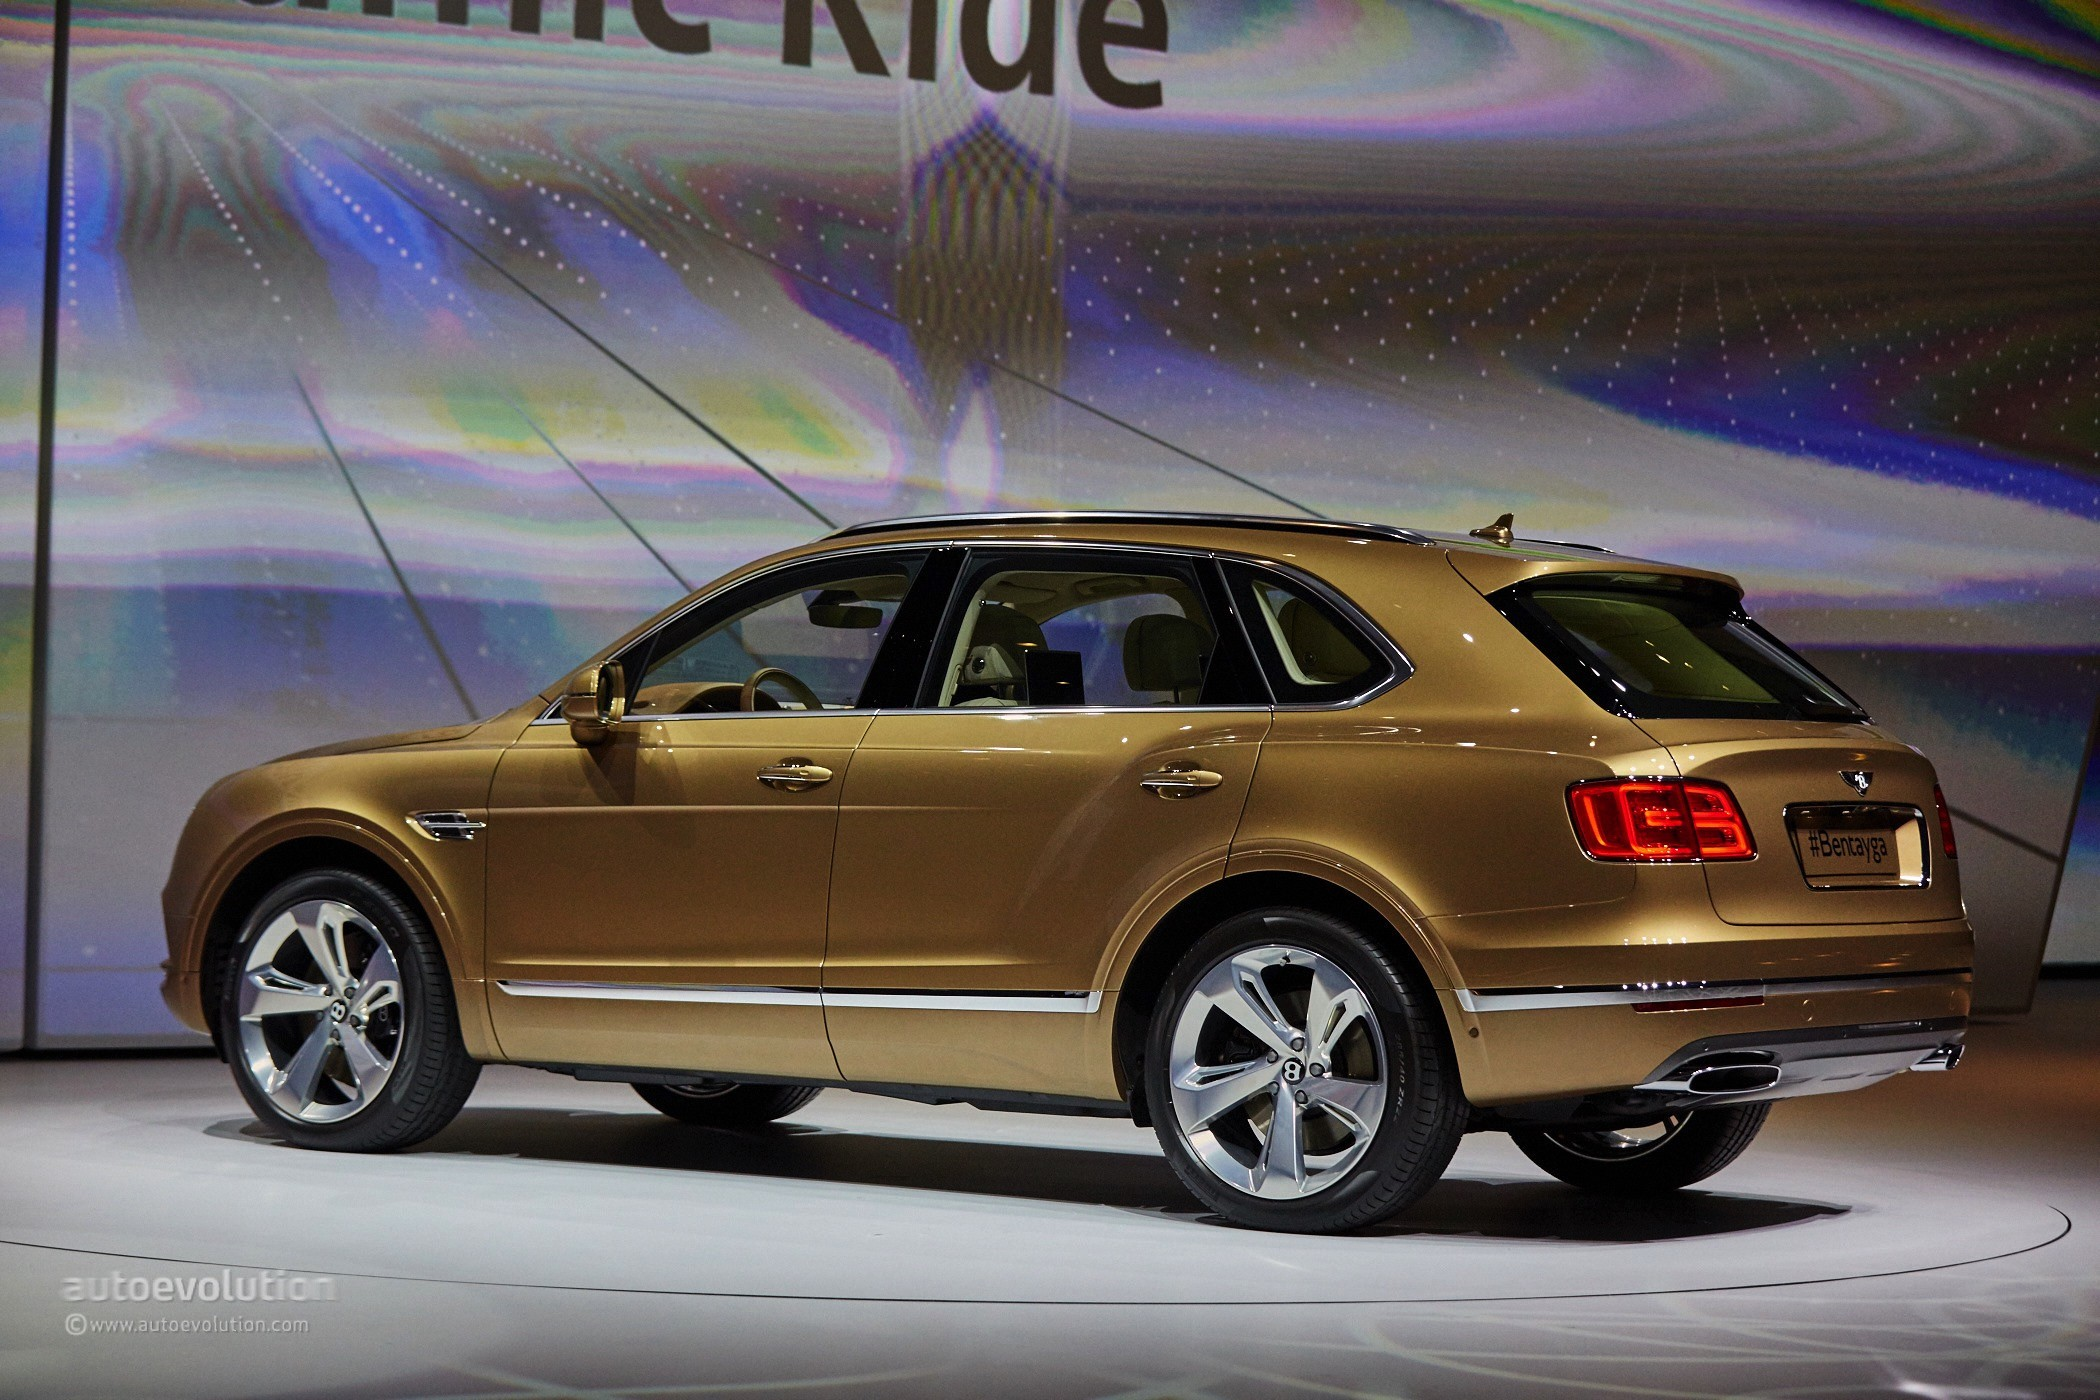 2016 Bentley Bentayga Makes World Debut In Gold At